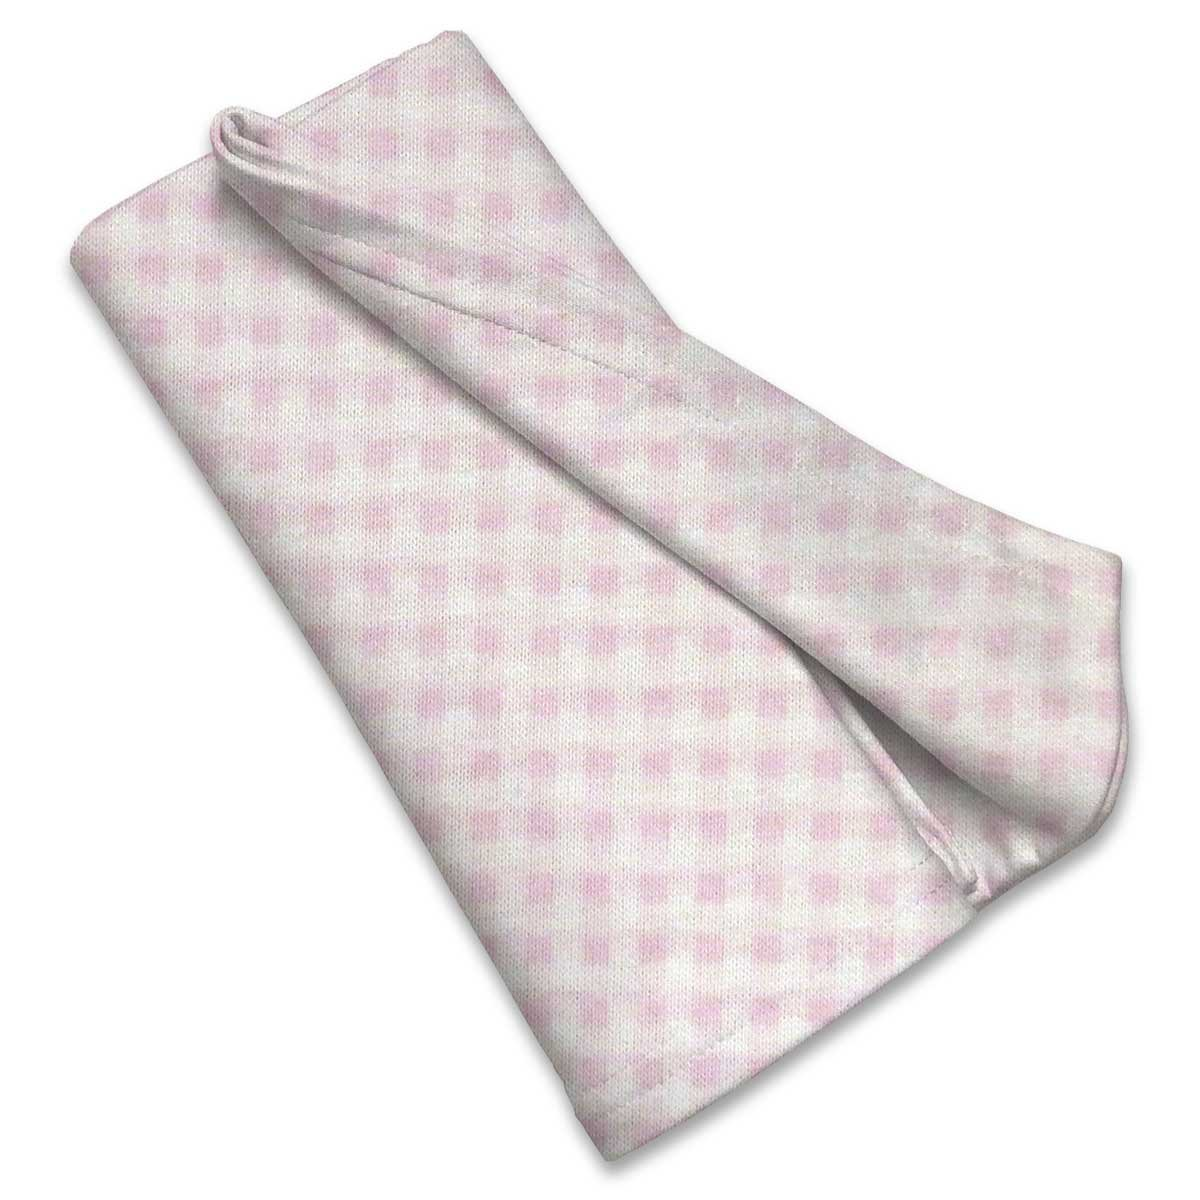 SheetWorld Soft & Stretchy Swaddle Blanket 36 x 36, Pink Gingham Check, Made in USA by SHEETWORLD.COM